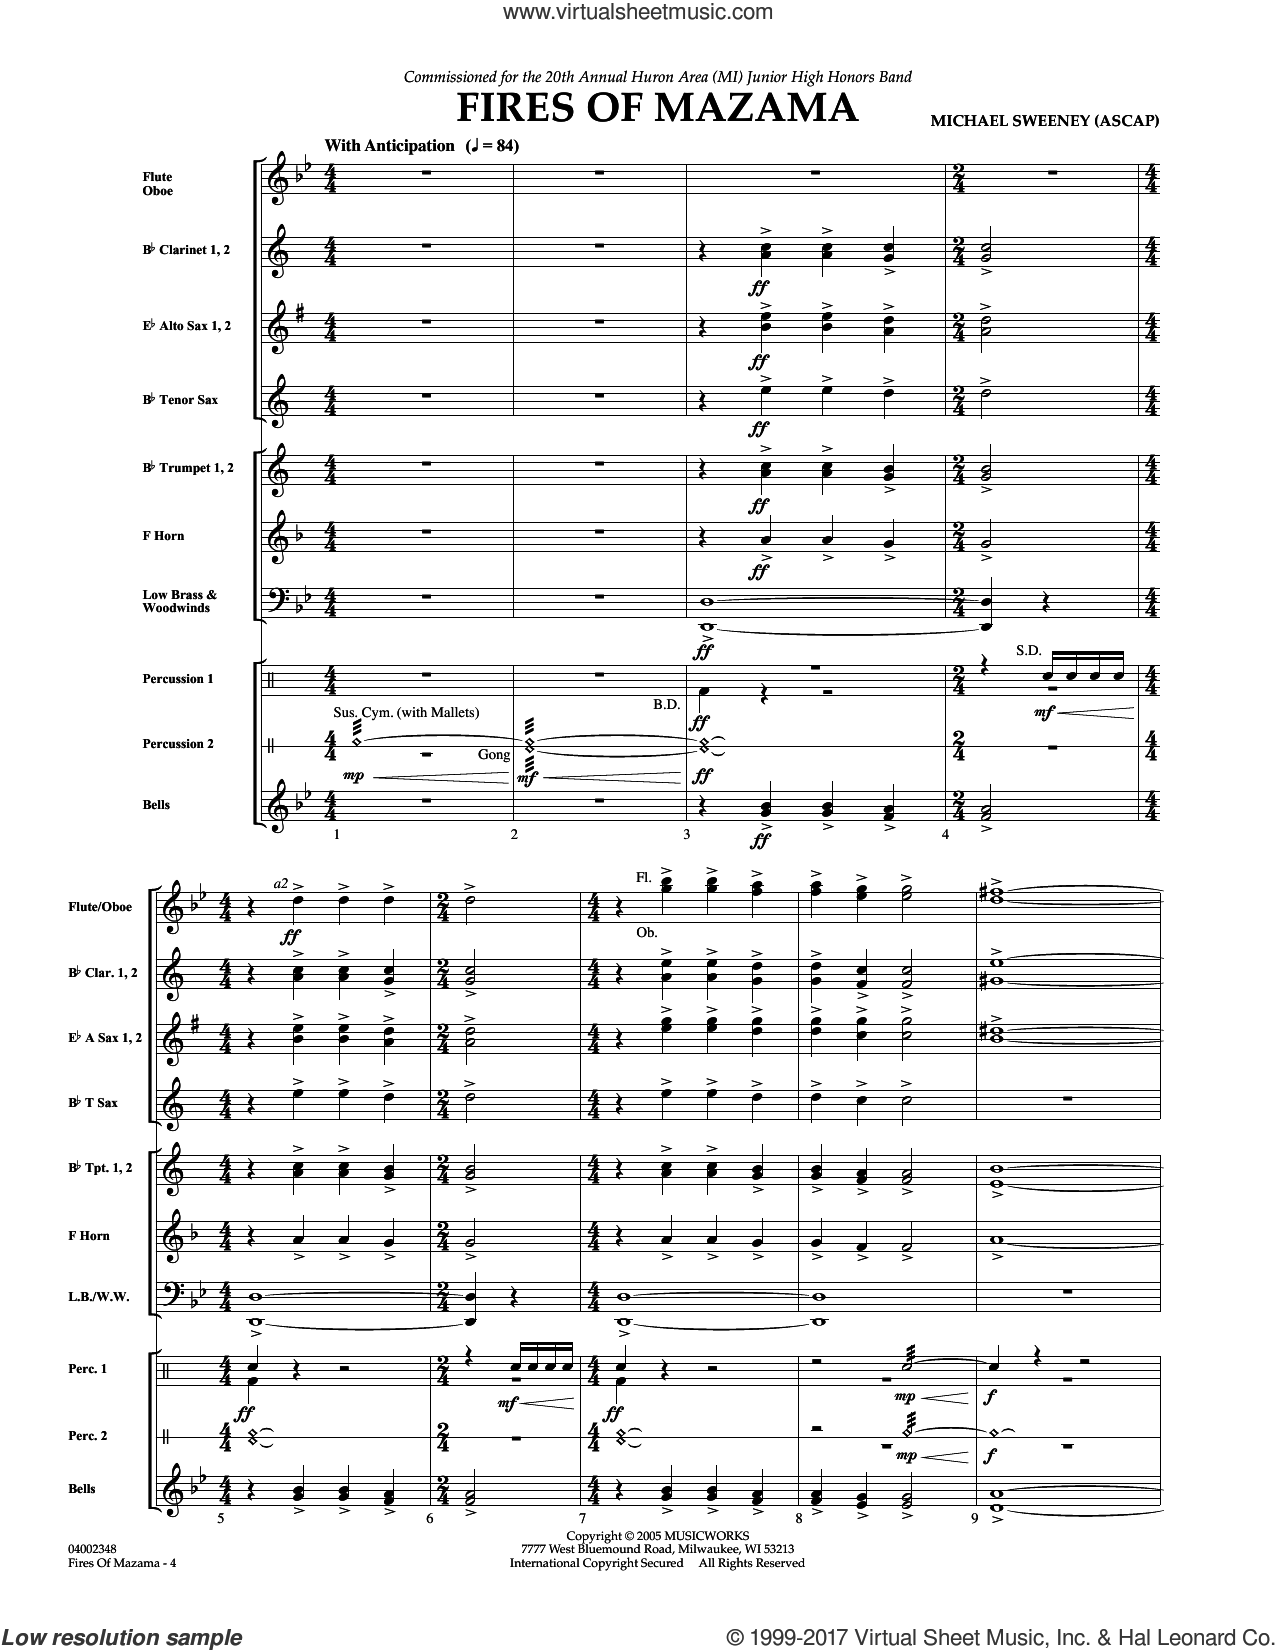 Fires of Mazama (COMPLETE) sheet music for concert band by Michael Sweeney, intermediate